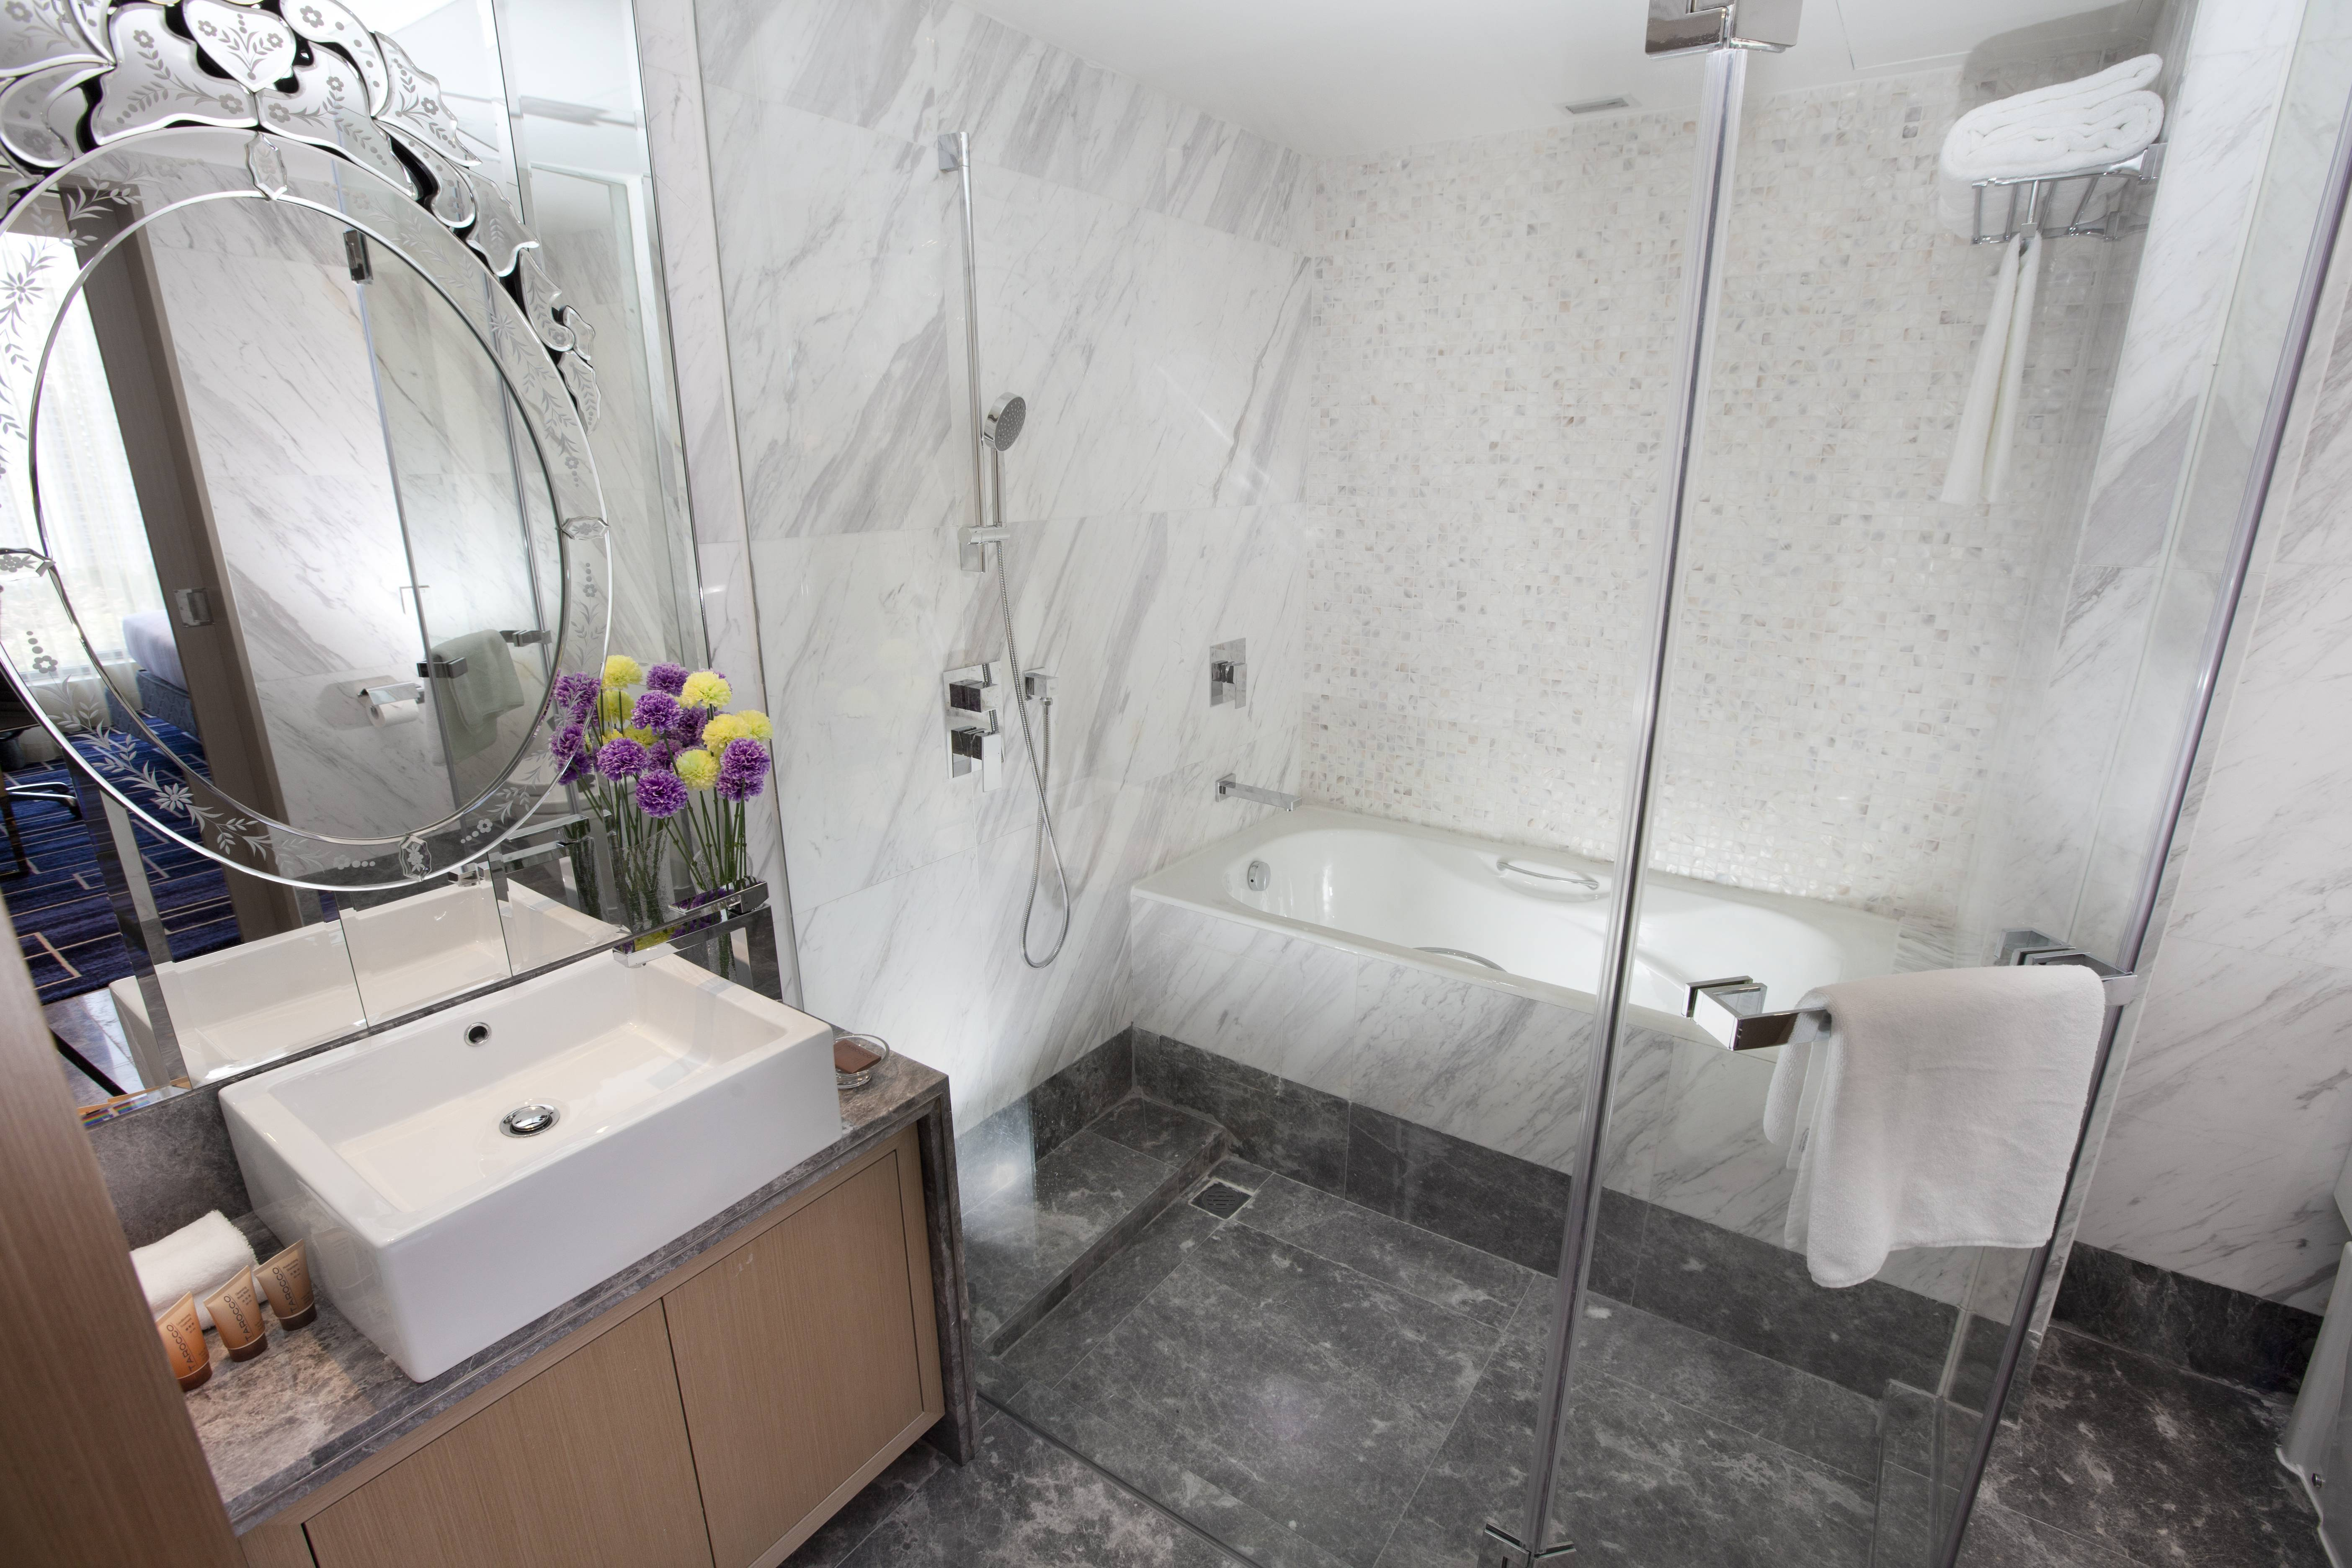 Executive Suite with Sofa Bed Bathroom Modern bathtub or rain shower to relax with quality toiletries